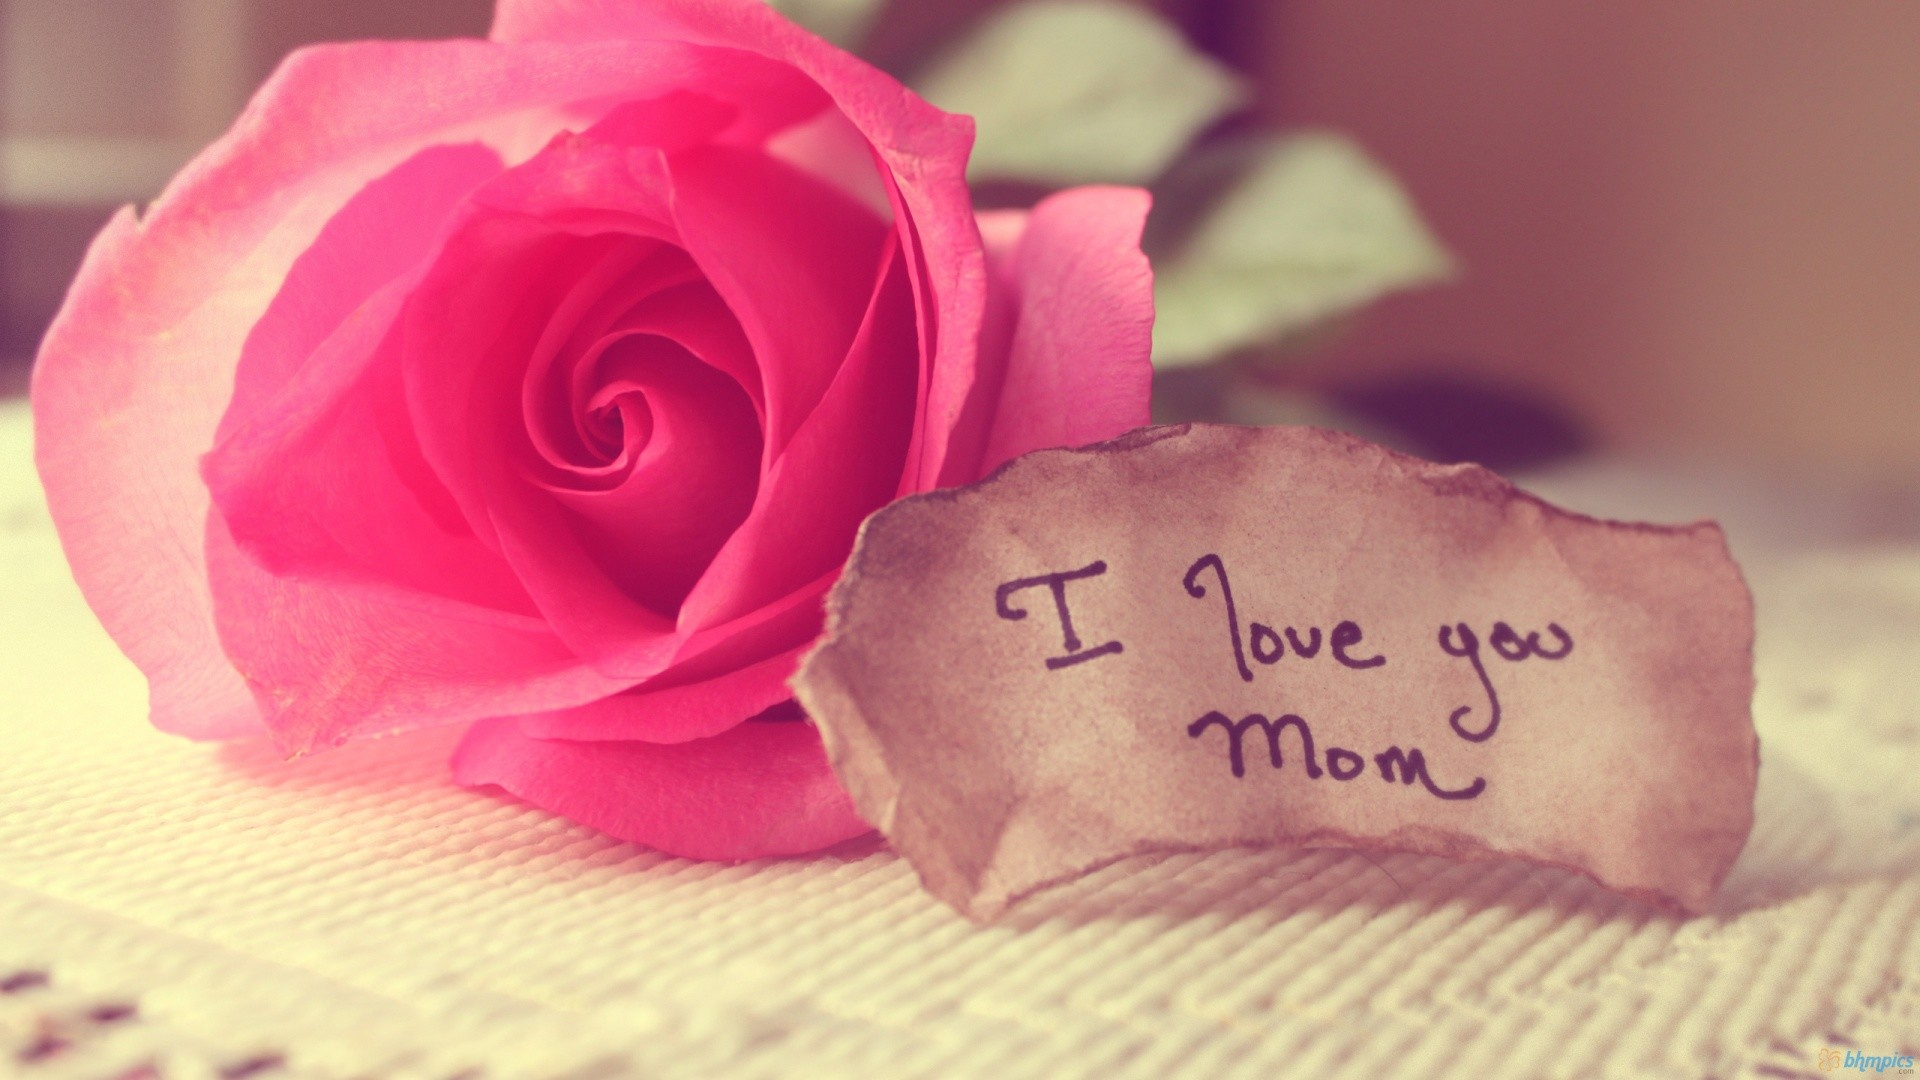 Mother's Day I Love You Mom Exclusive HD Wallpapers #3122